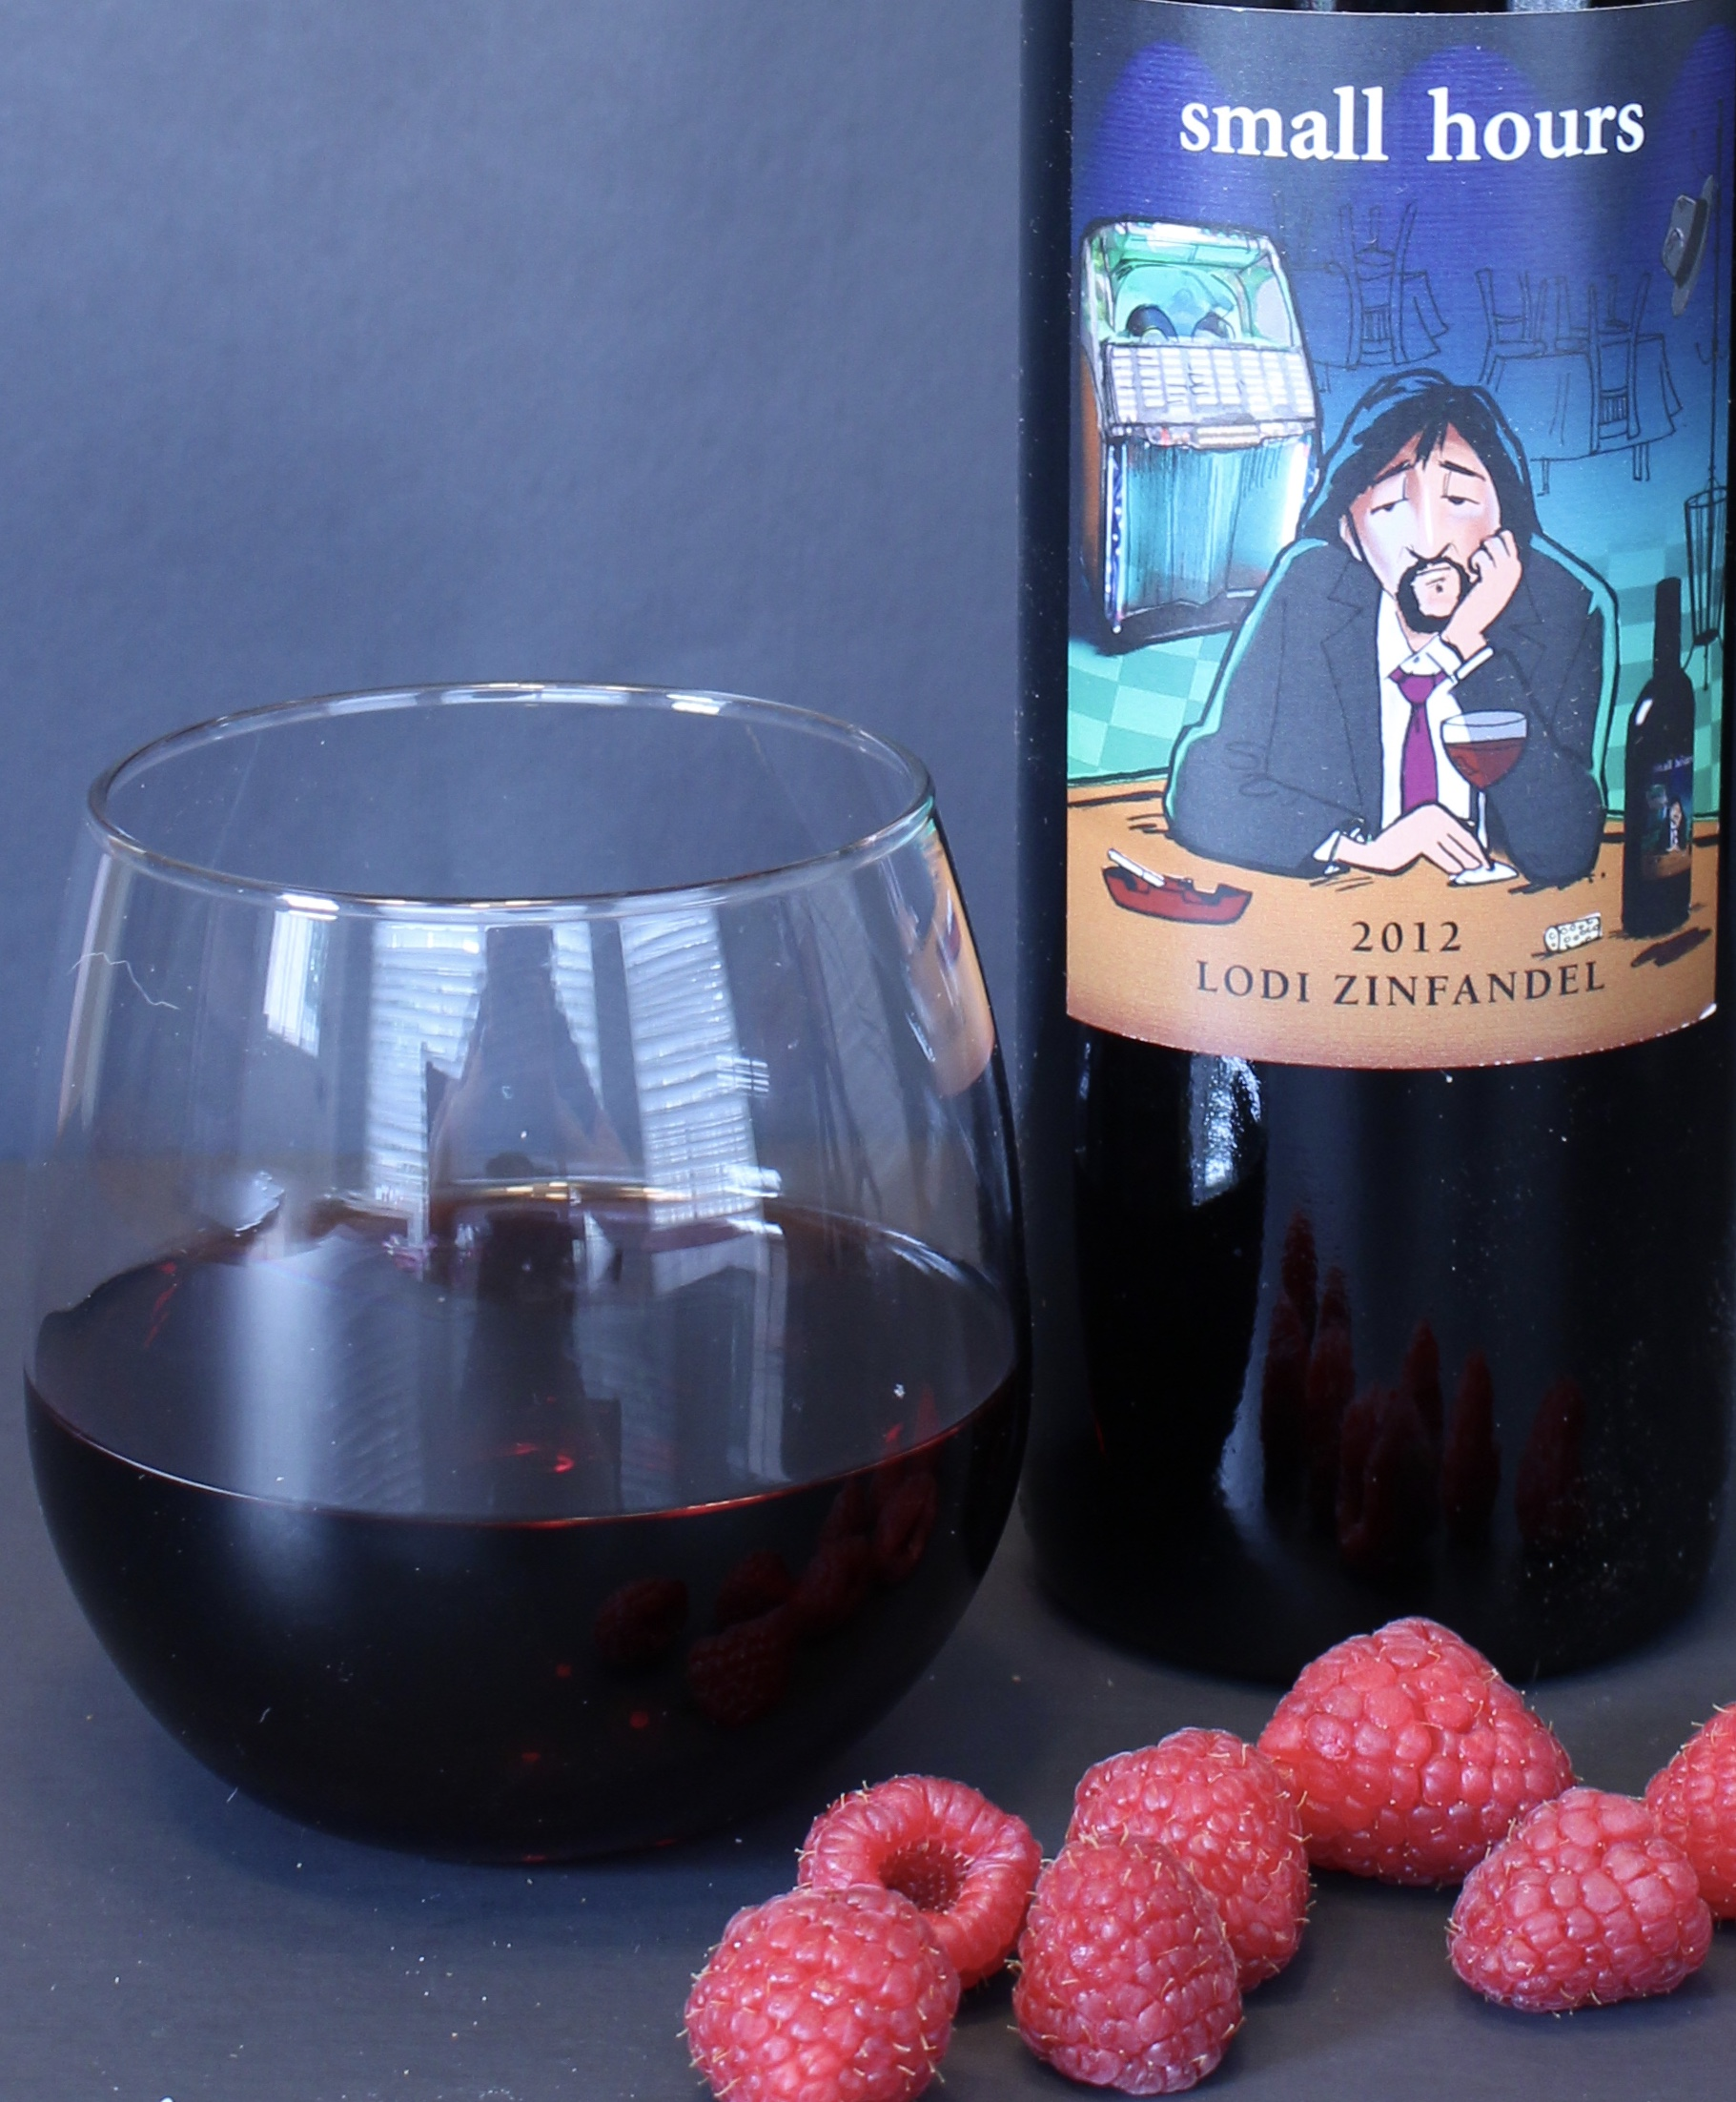 Small Hours Zinfandel 2012